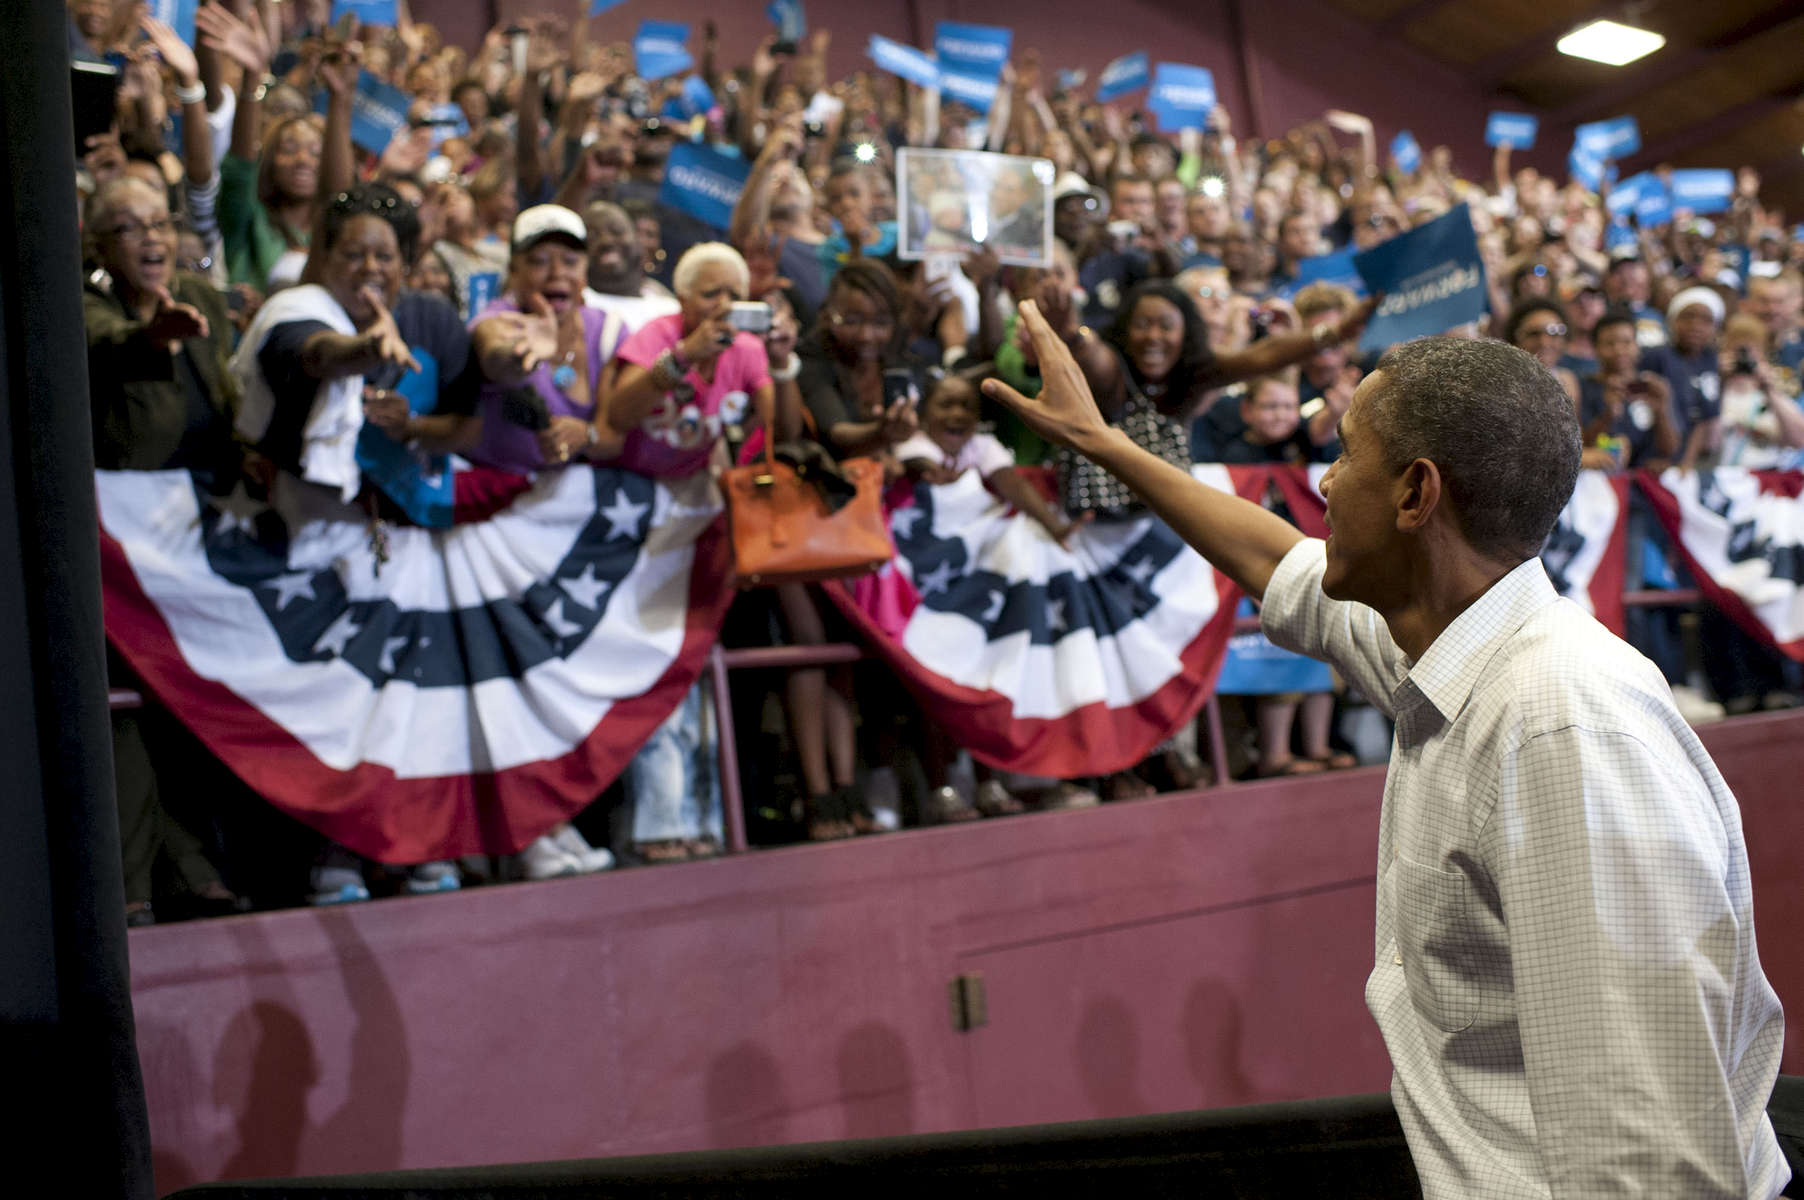 September 3, 2012 - TOLEDO, OH: President Barack Obama waves to supporters at a Labor Day rally in Toledo, OH. (Scout Tufankjian for Obama for America/Polaris)